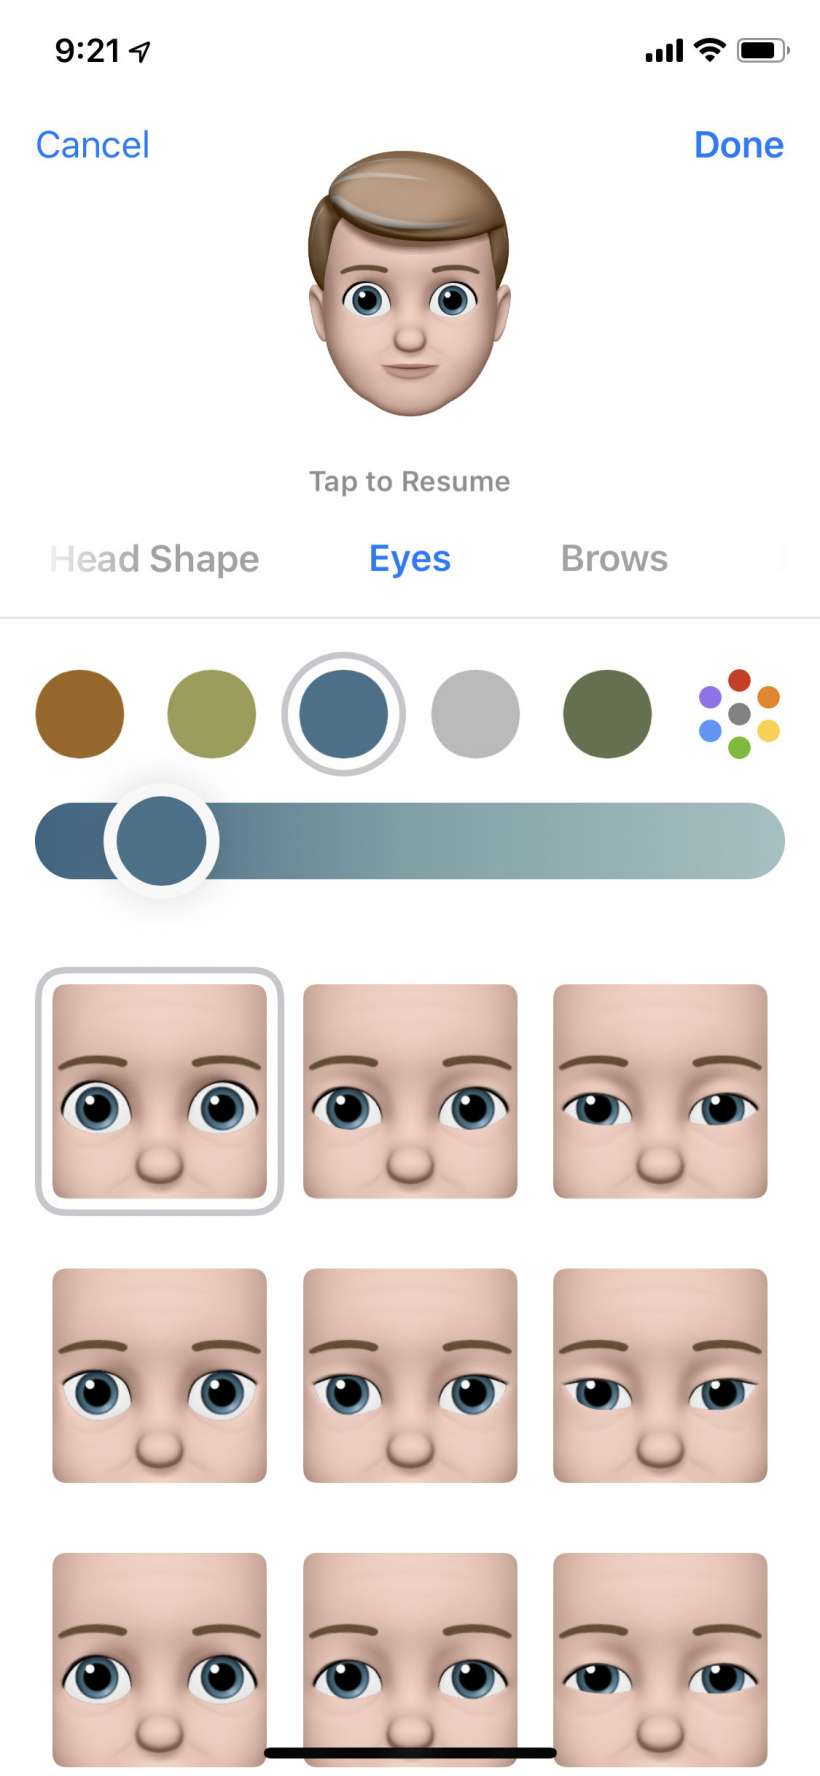 How to create and use Memoji on iPhone | The iPhone FAQ